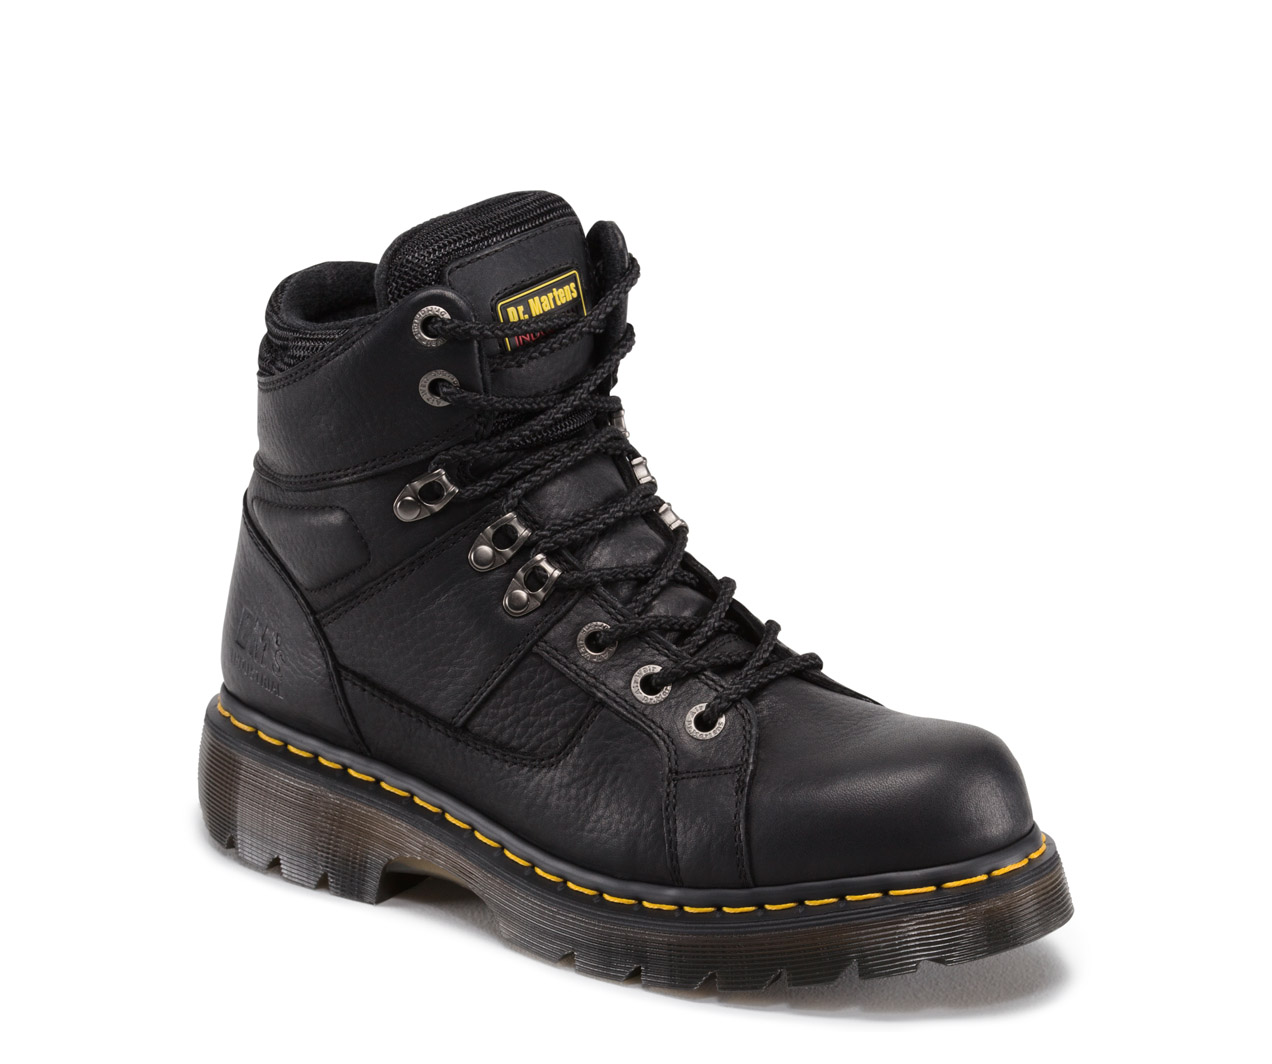 Ironbridge Work Boots Amp Shoes The Official Us Dr